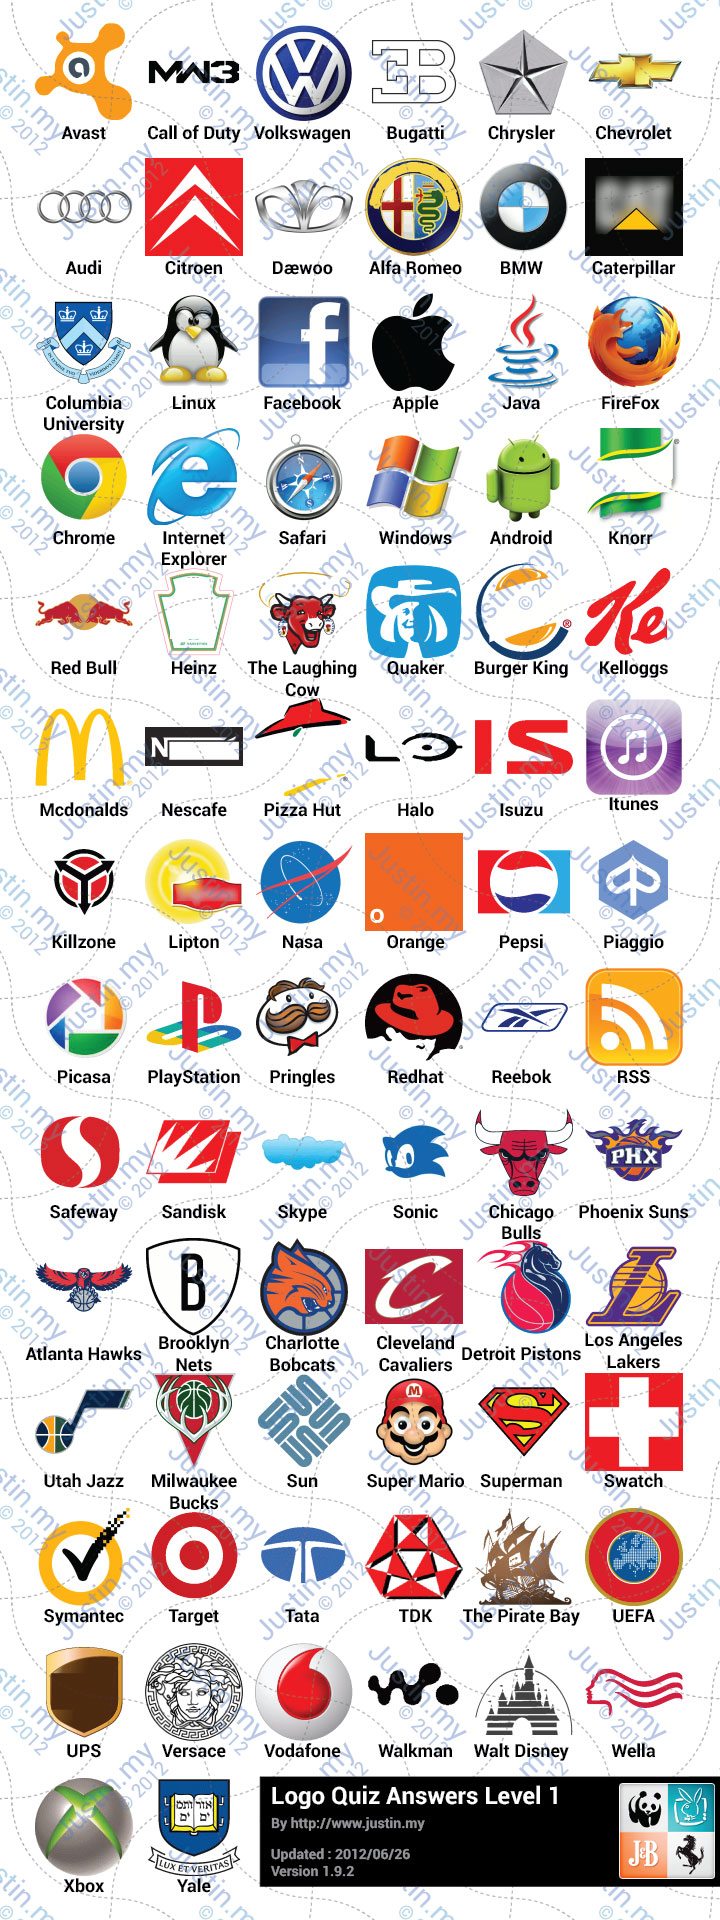 Logos Quiz Answers for Addictive Mind Puzzlers – Justin.my